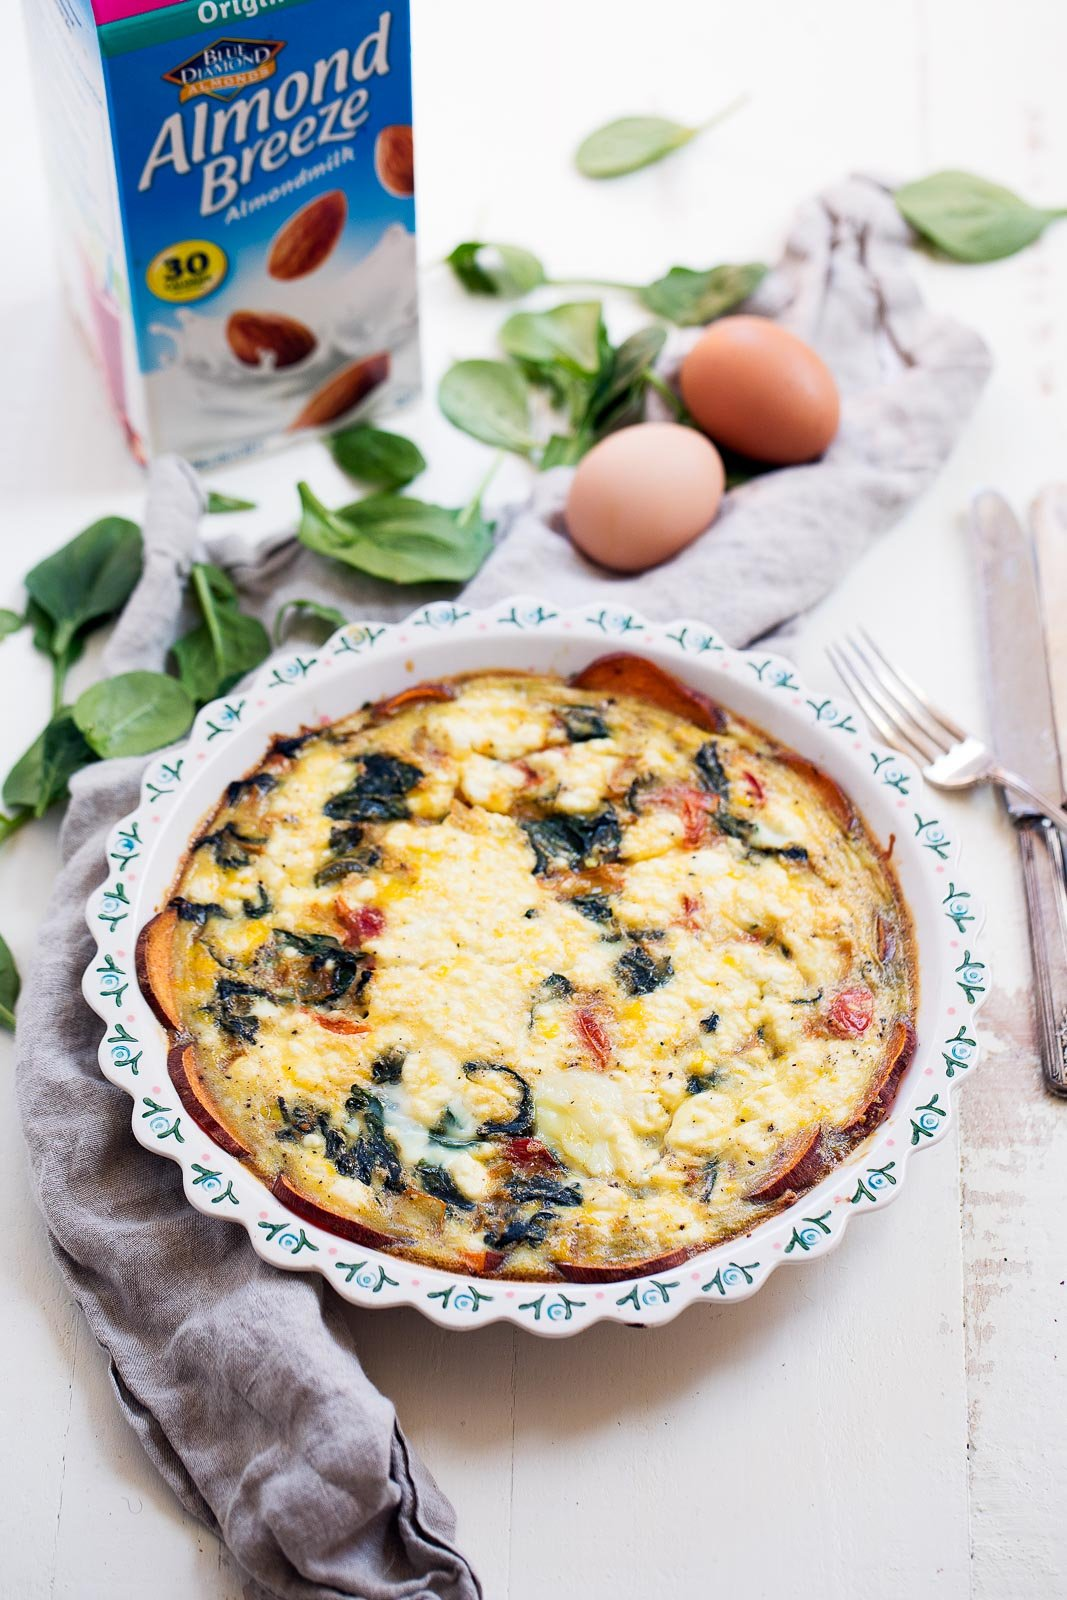 Spinach and goat cheese quiche made with a scrumptious sweet potato crust that helps to hold the quiche nicely together without all the calories of a regular crust. Gluten free!